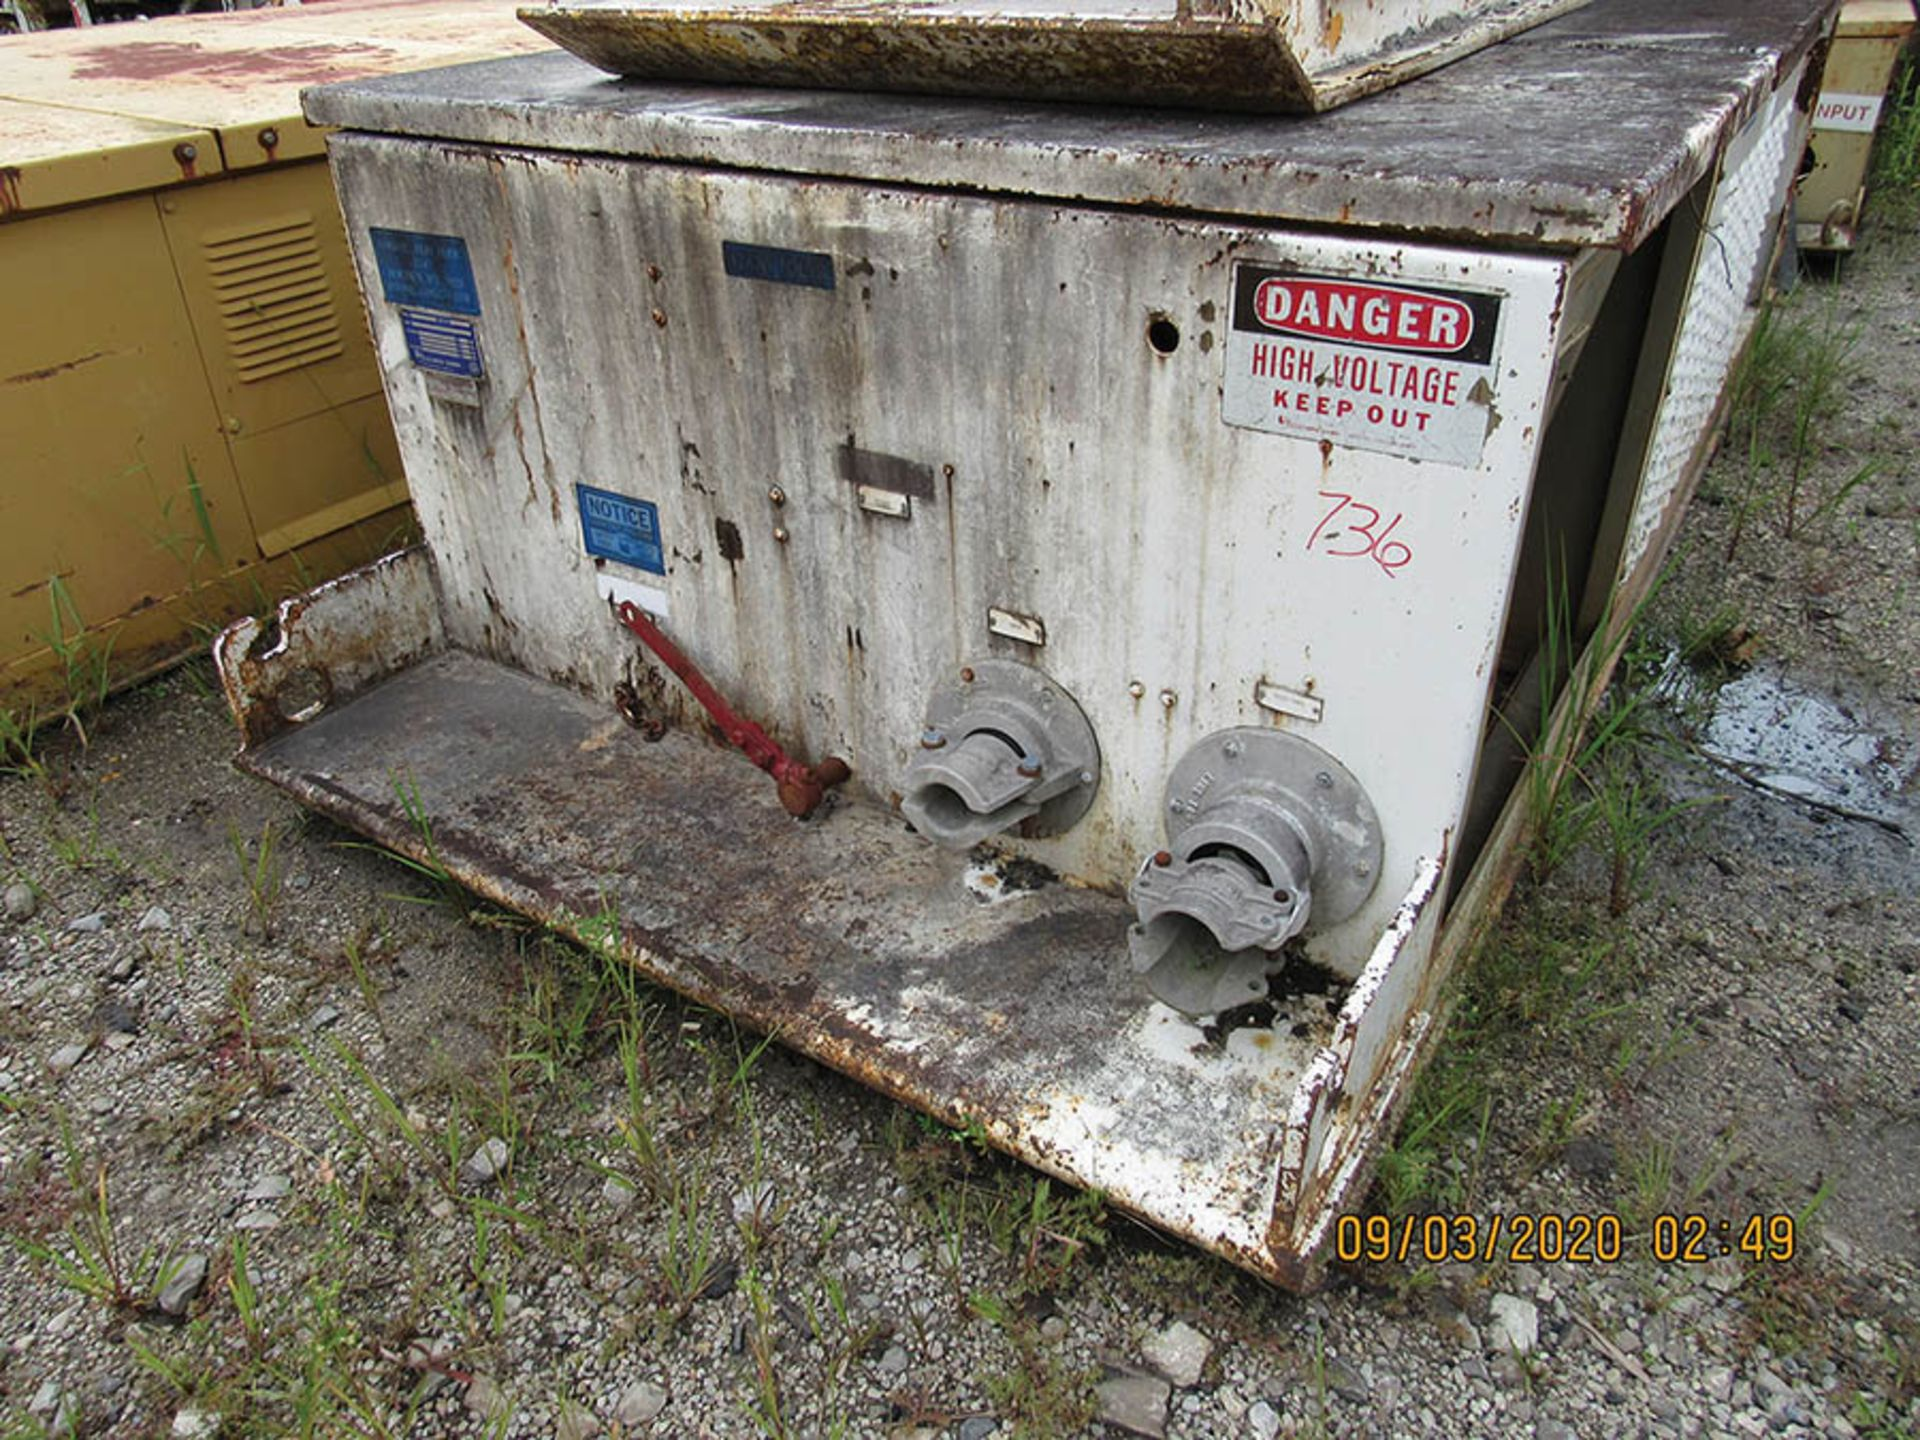 Lot 736 - LINE POWER CO. MODEL 300 PC POWER CENTER, S/N R1930, INPUT 12470 VAC 3 PH. 60HZ, AC OUT 480 VAC.